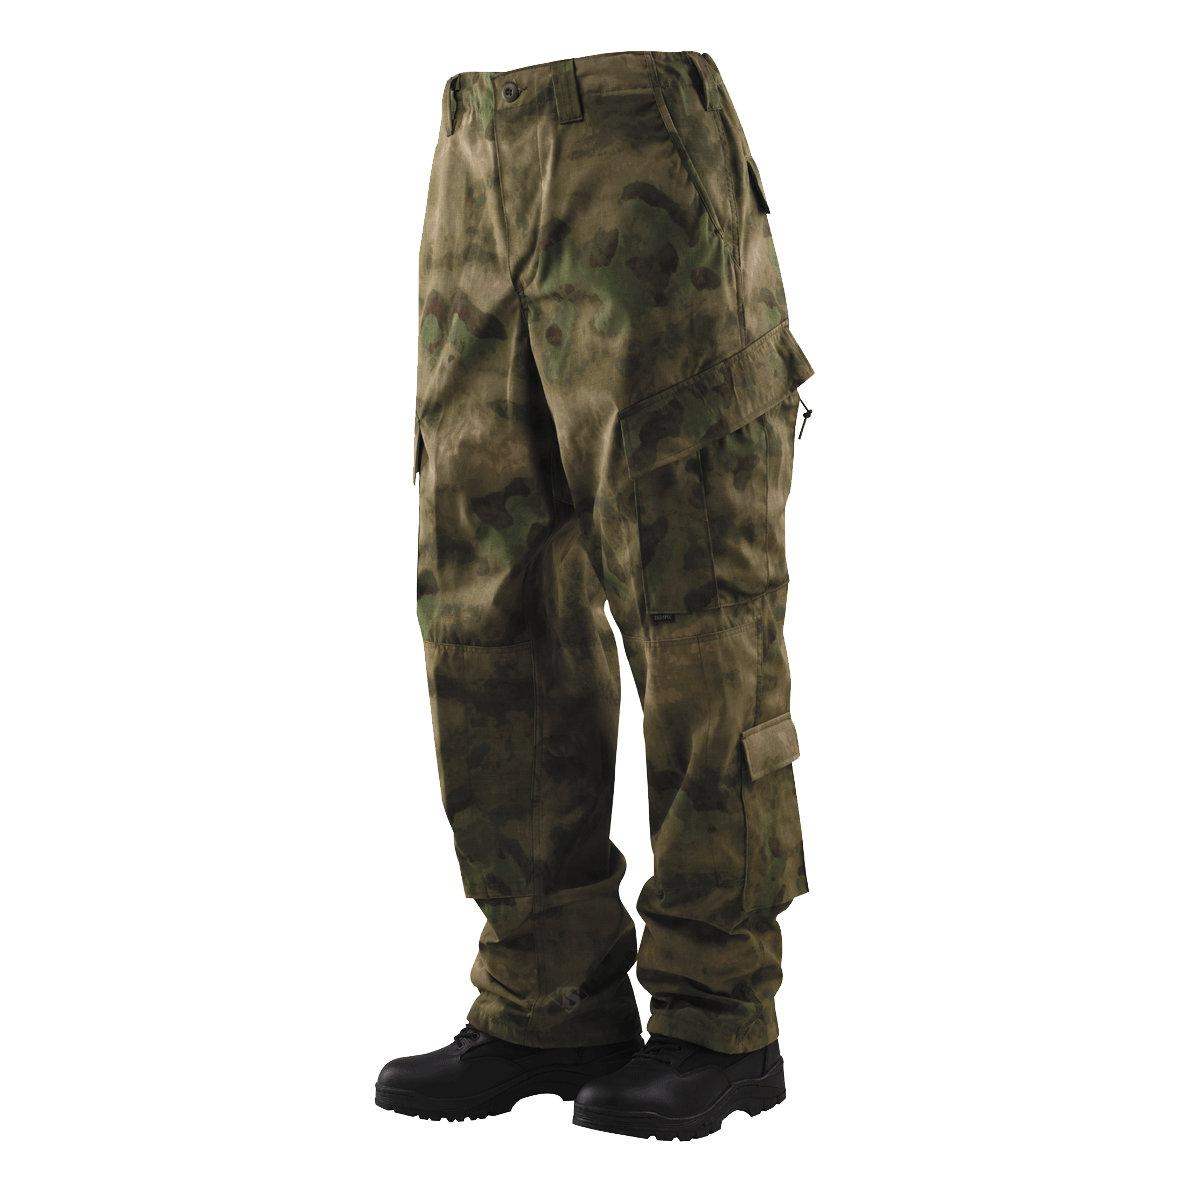 Tru-Spec 1326 Tactical Response Uniform (TRU) Trousers, Pants, A-TACS FG by Atlanco